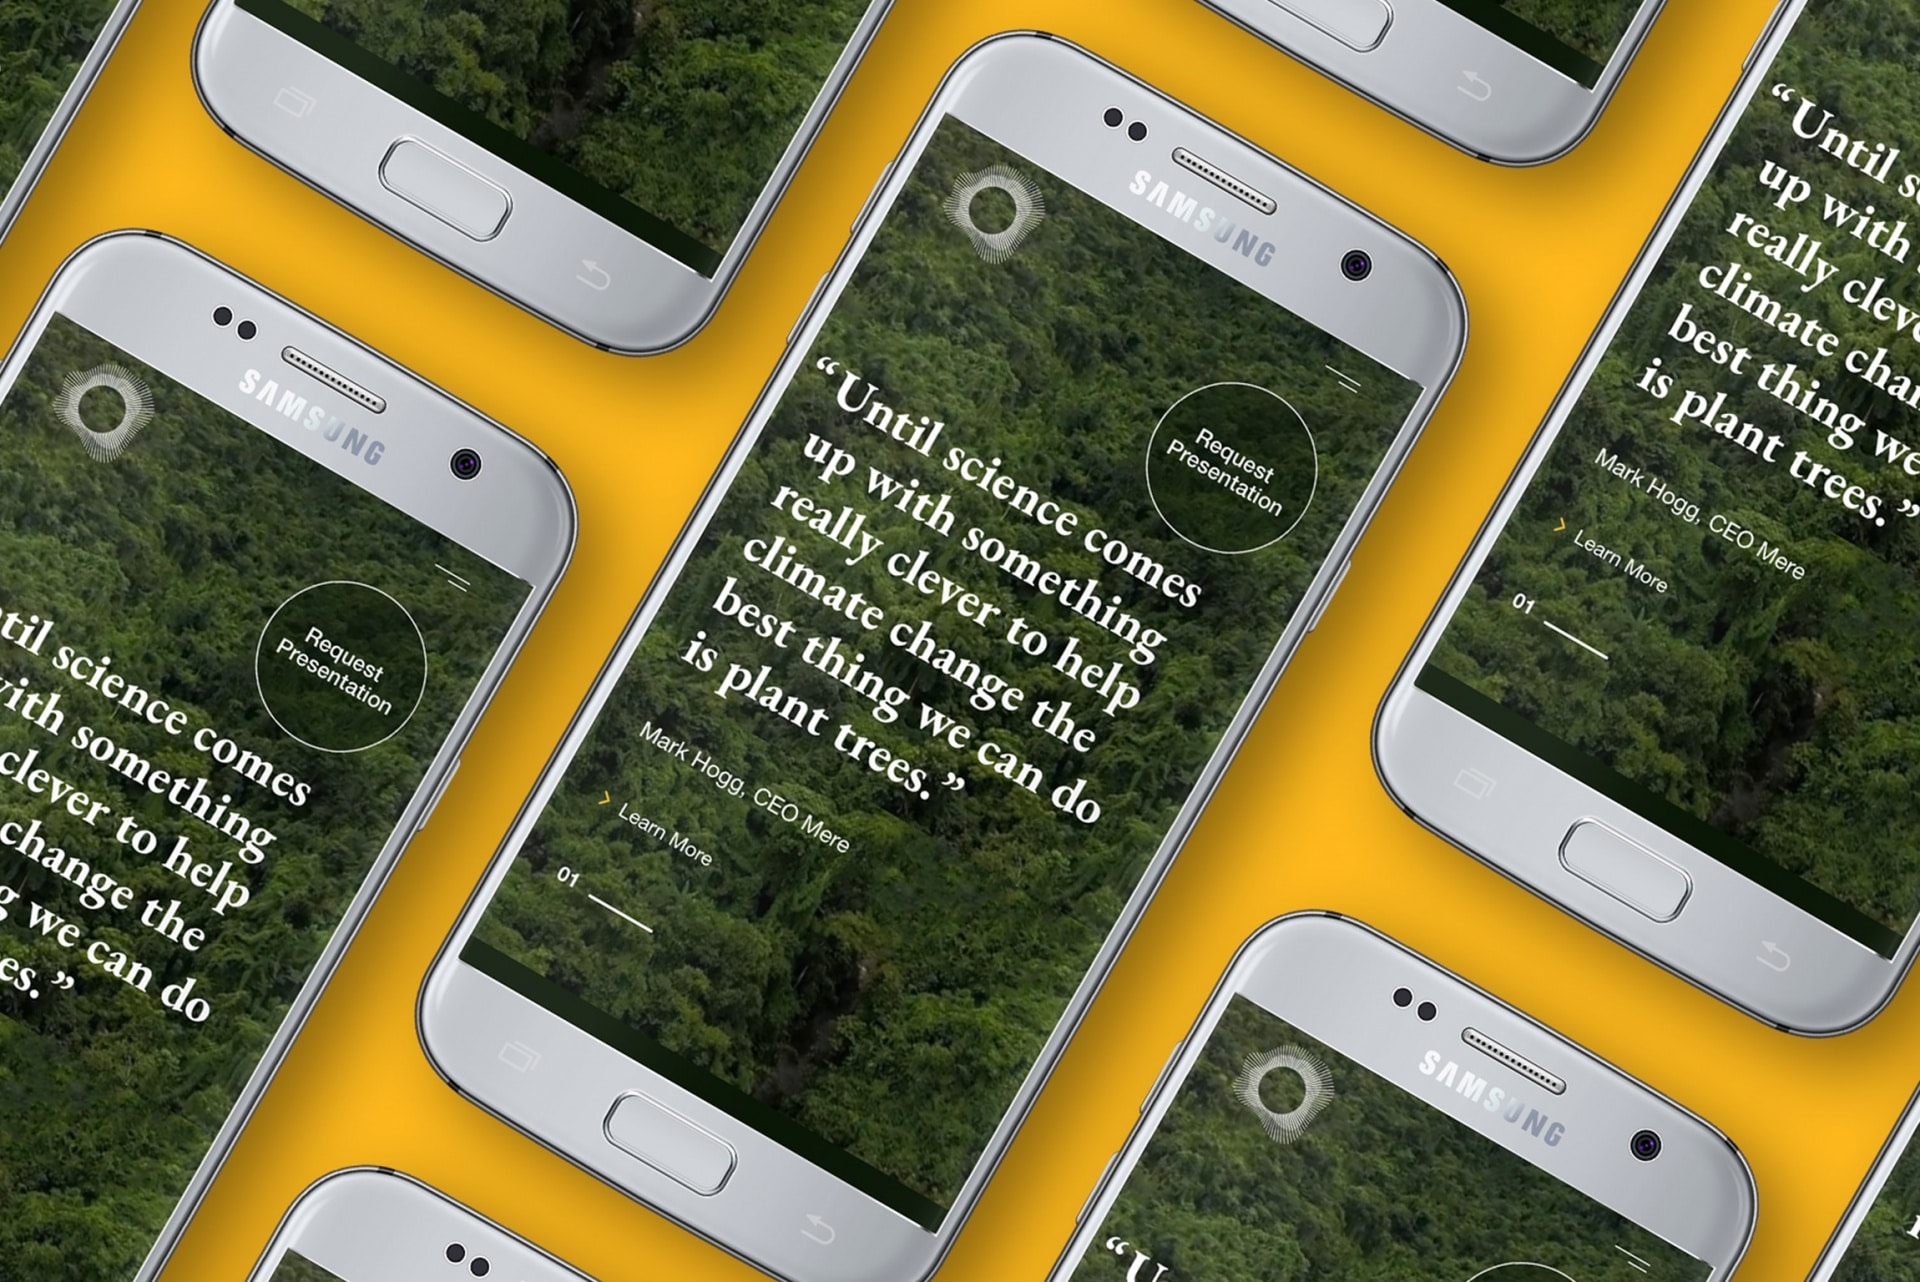 Forest Fund mobile site - Home